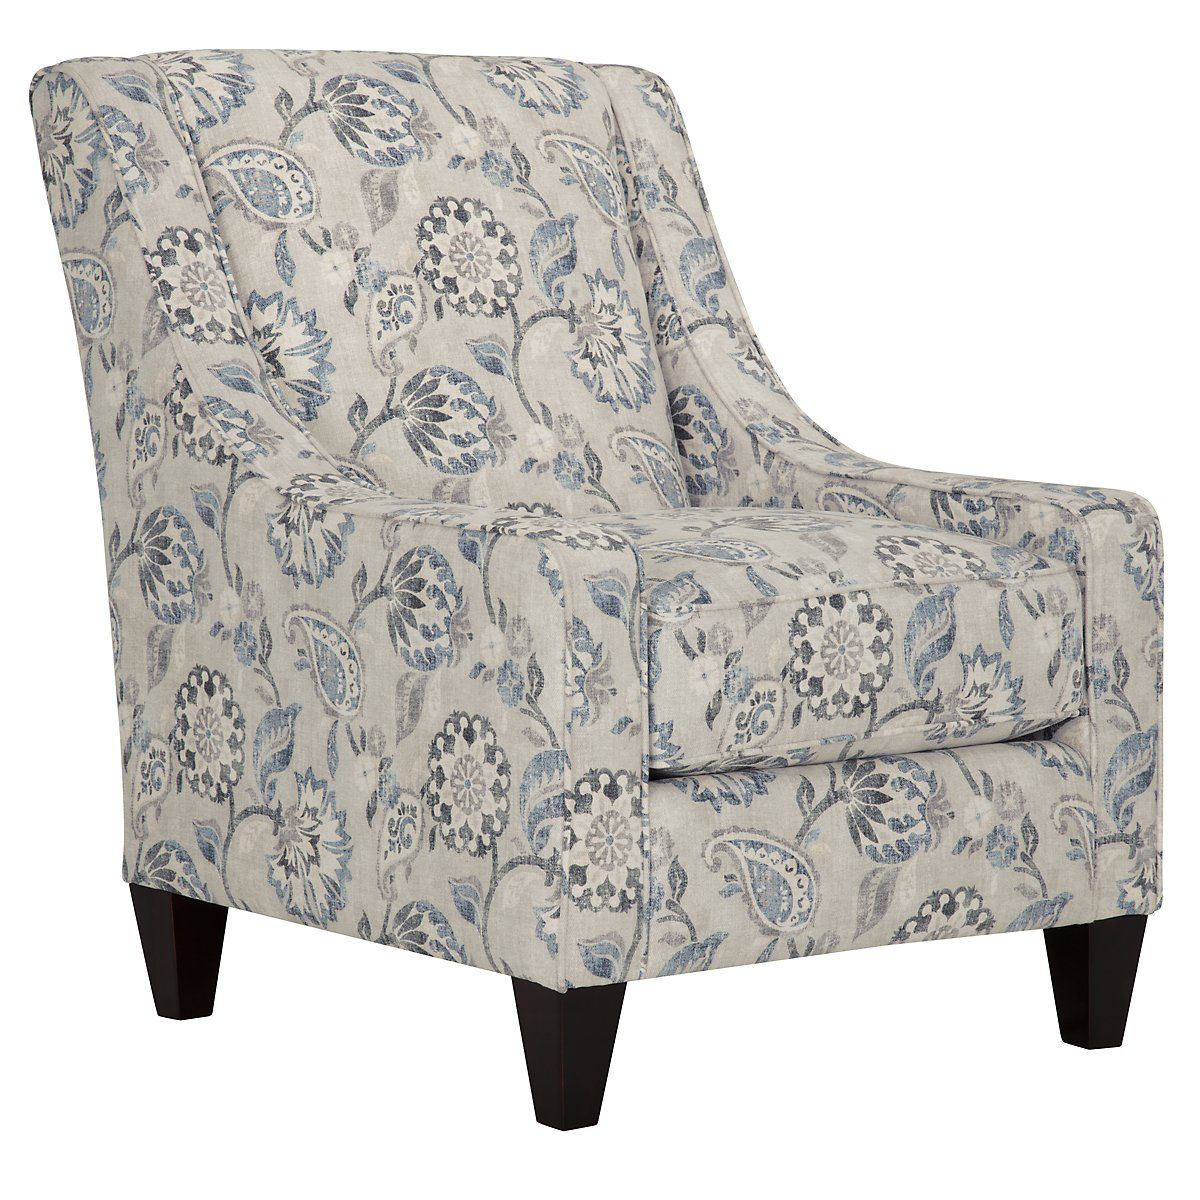 Attirant Sylvie Blue Floral Accent Chair